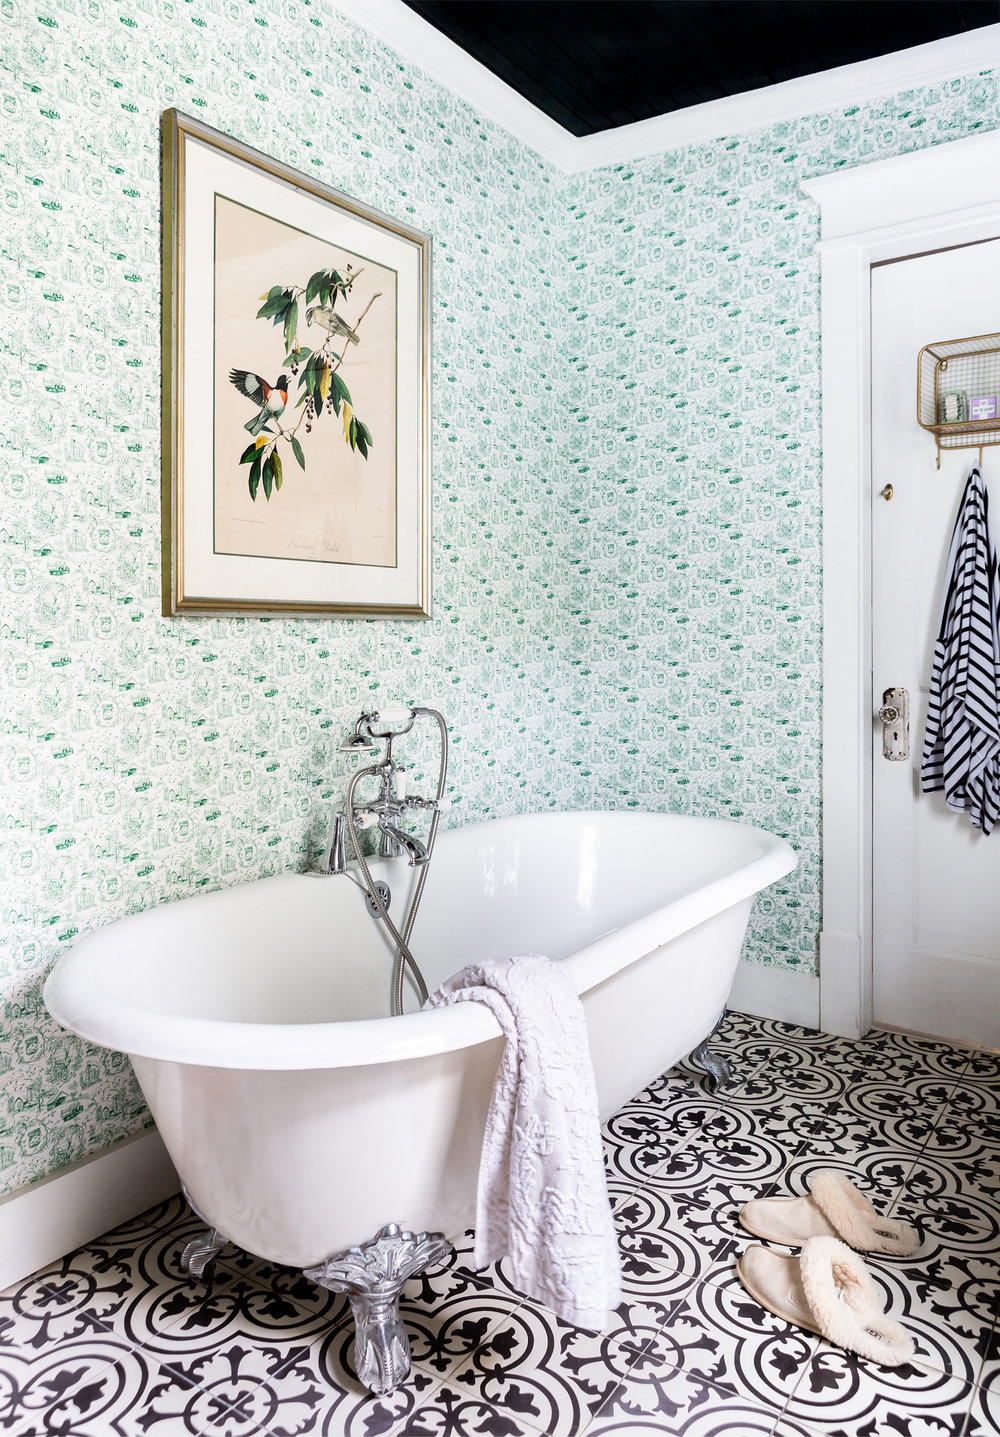 Like her kitchens, Holly's bathrooms are lovely (though wholly utilitarian) spaces. At Fox Country Farmhouse, she's used a Kohler trough sink and faucets; Tabarka Studio floor tiles; custom Country Living wallpaper; a spacious subway-tiled shower; and her always-mandatory antique soaking tub.